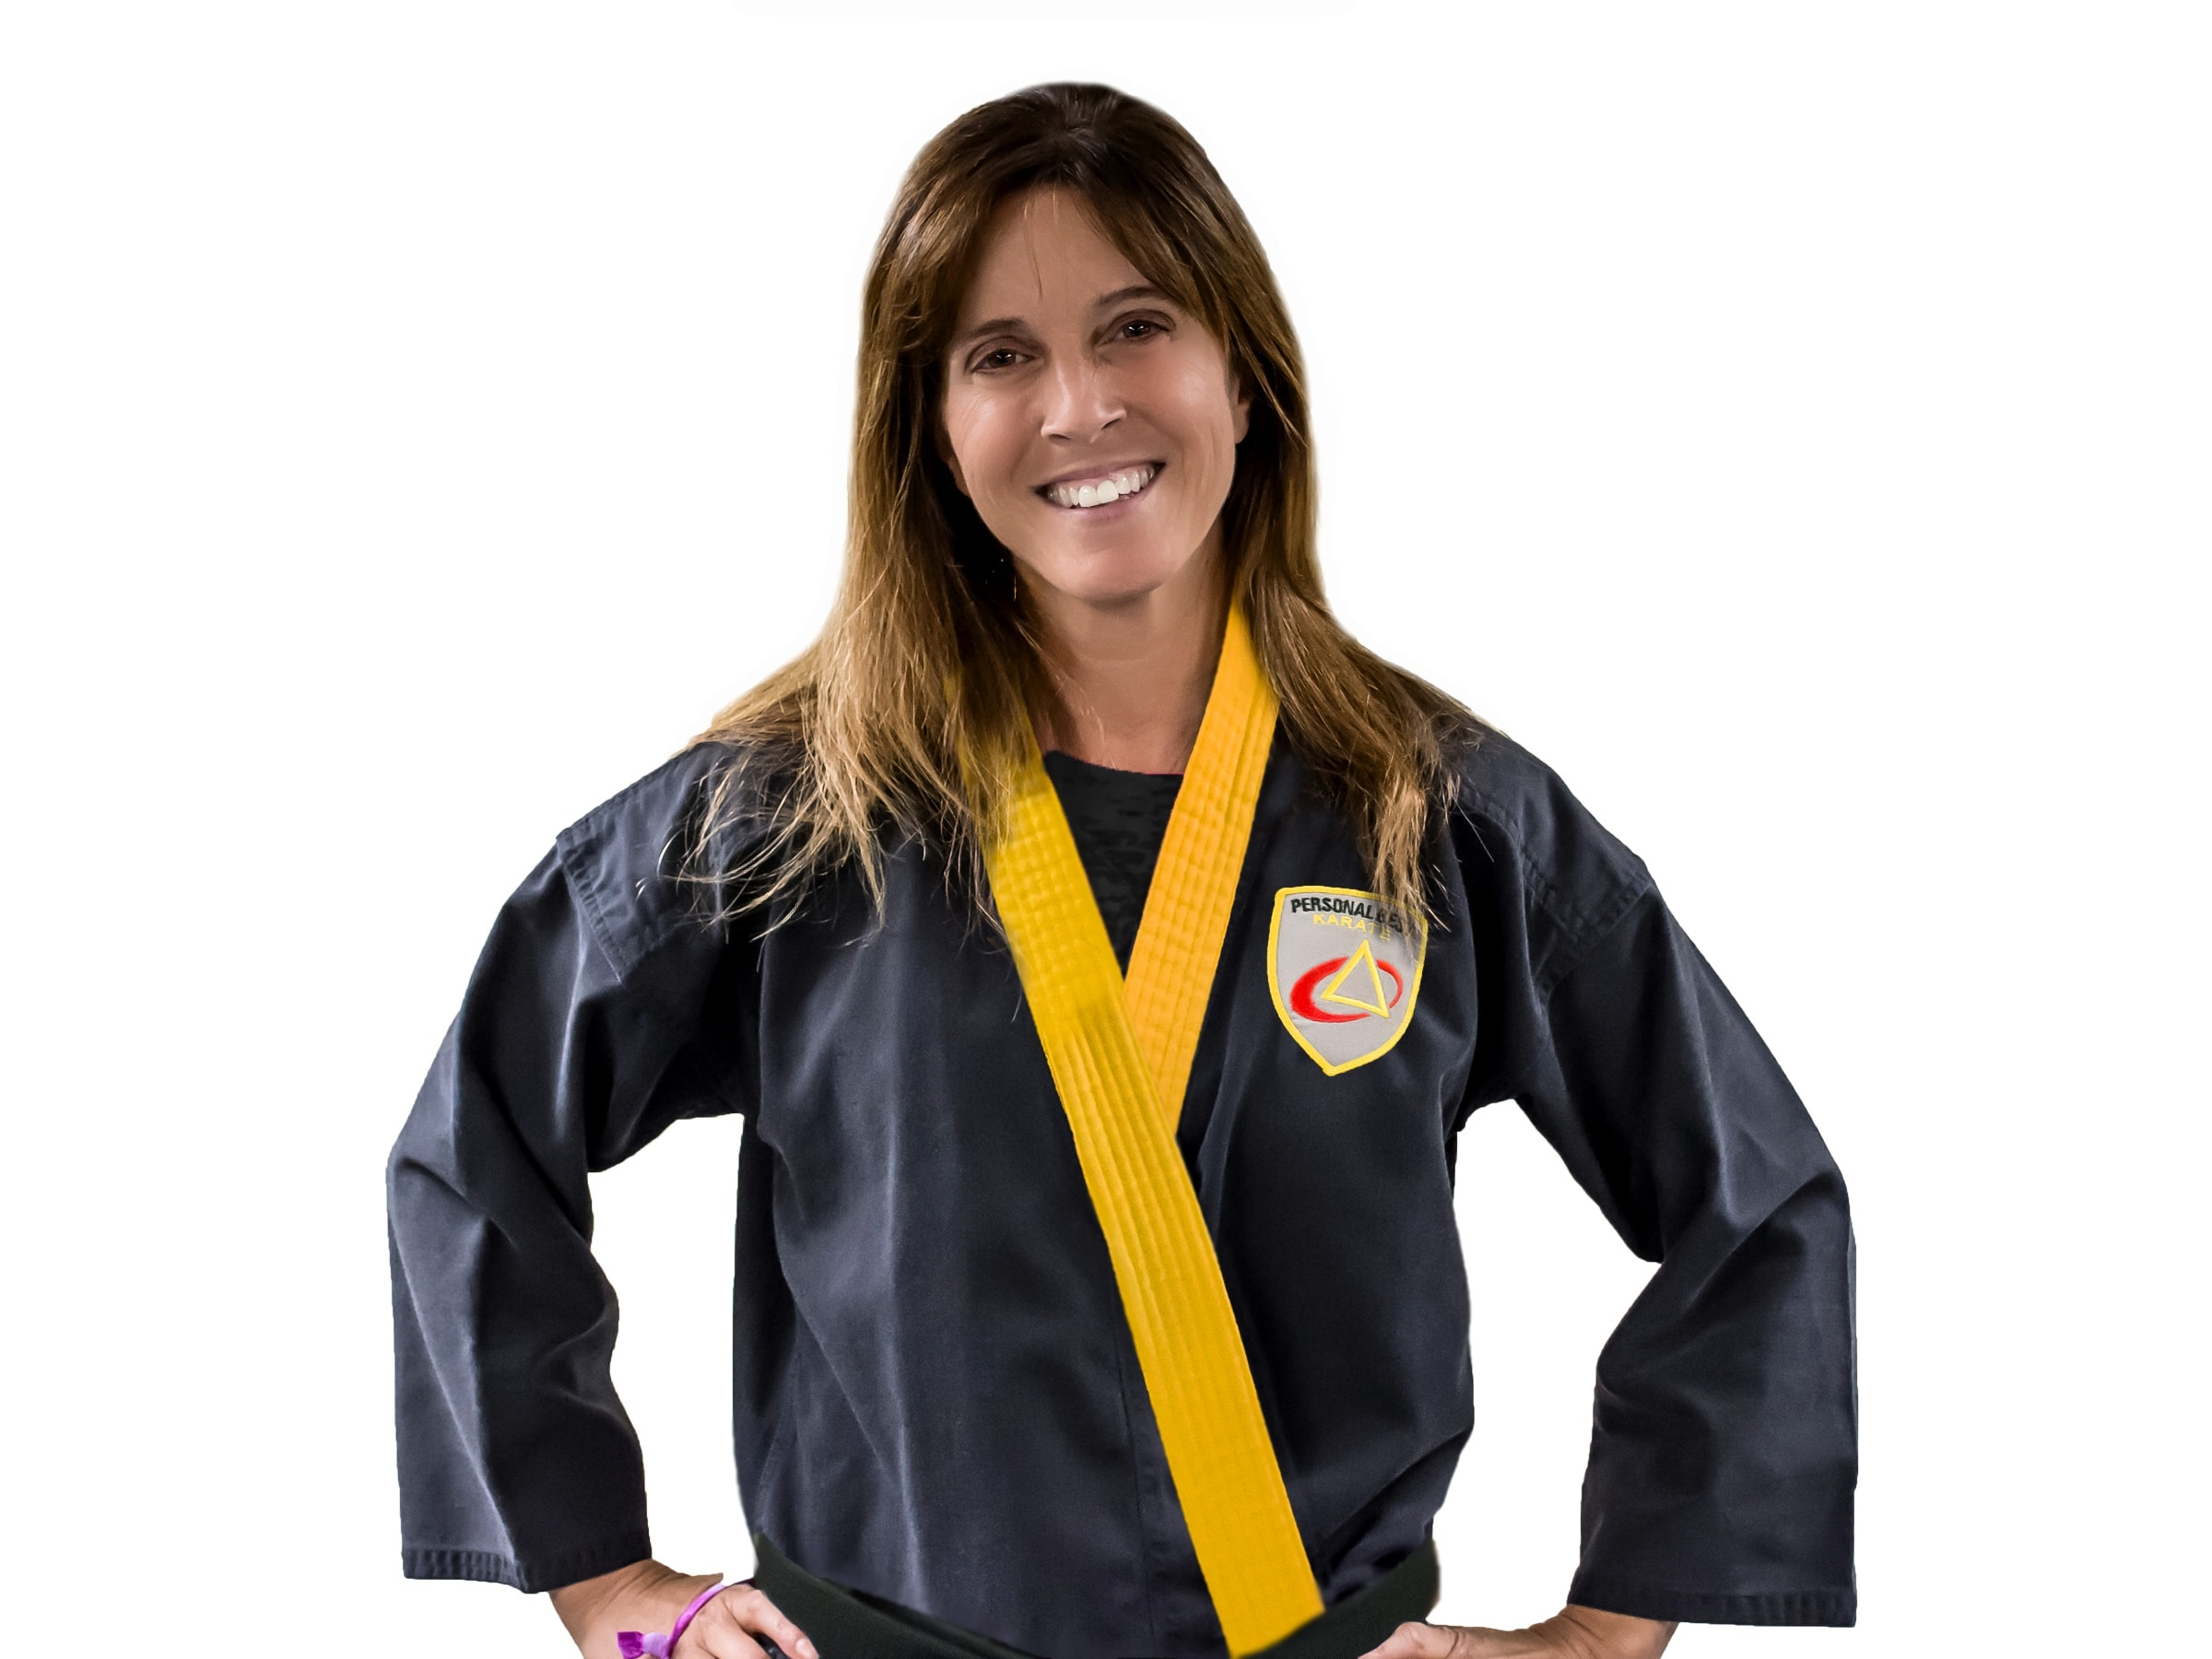 Tracy Rappold in Norton - Personal Best Karate